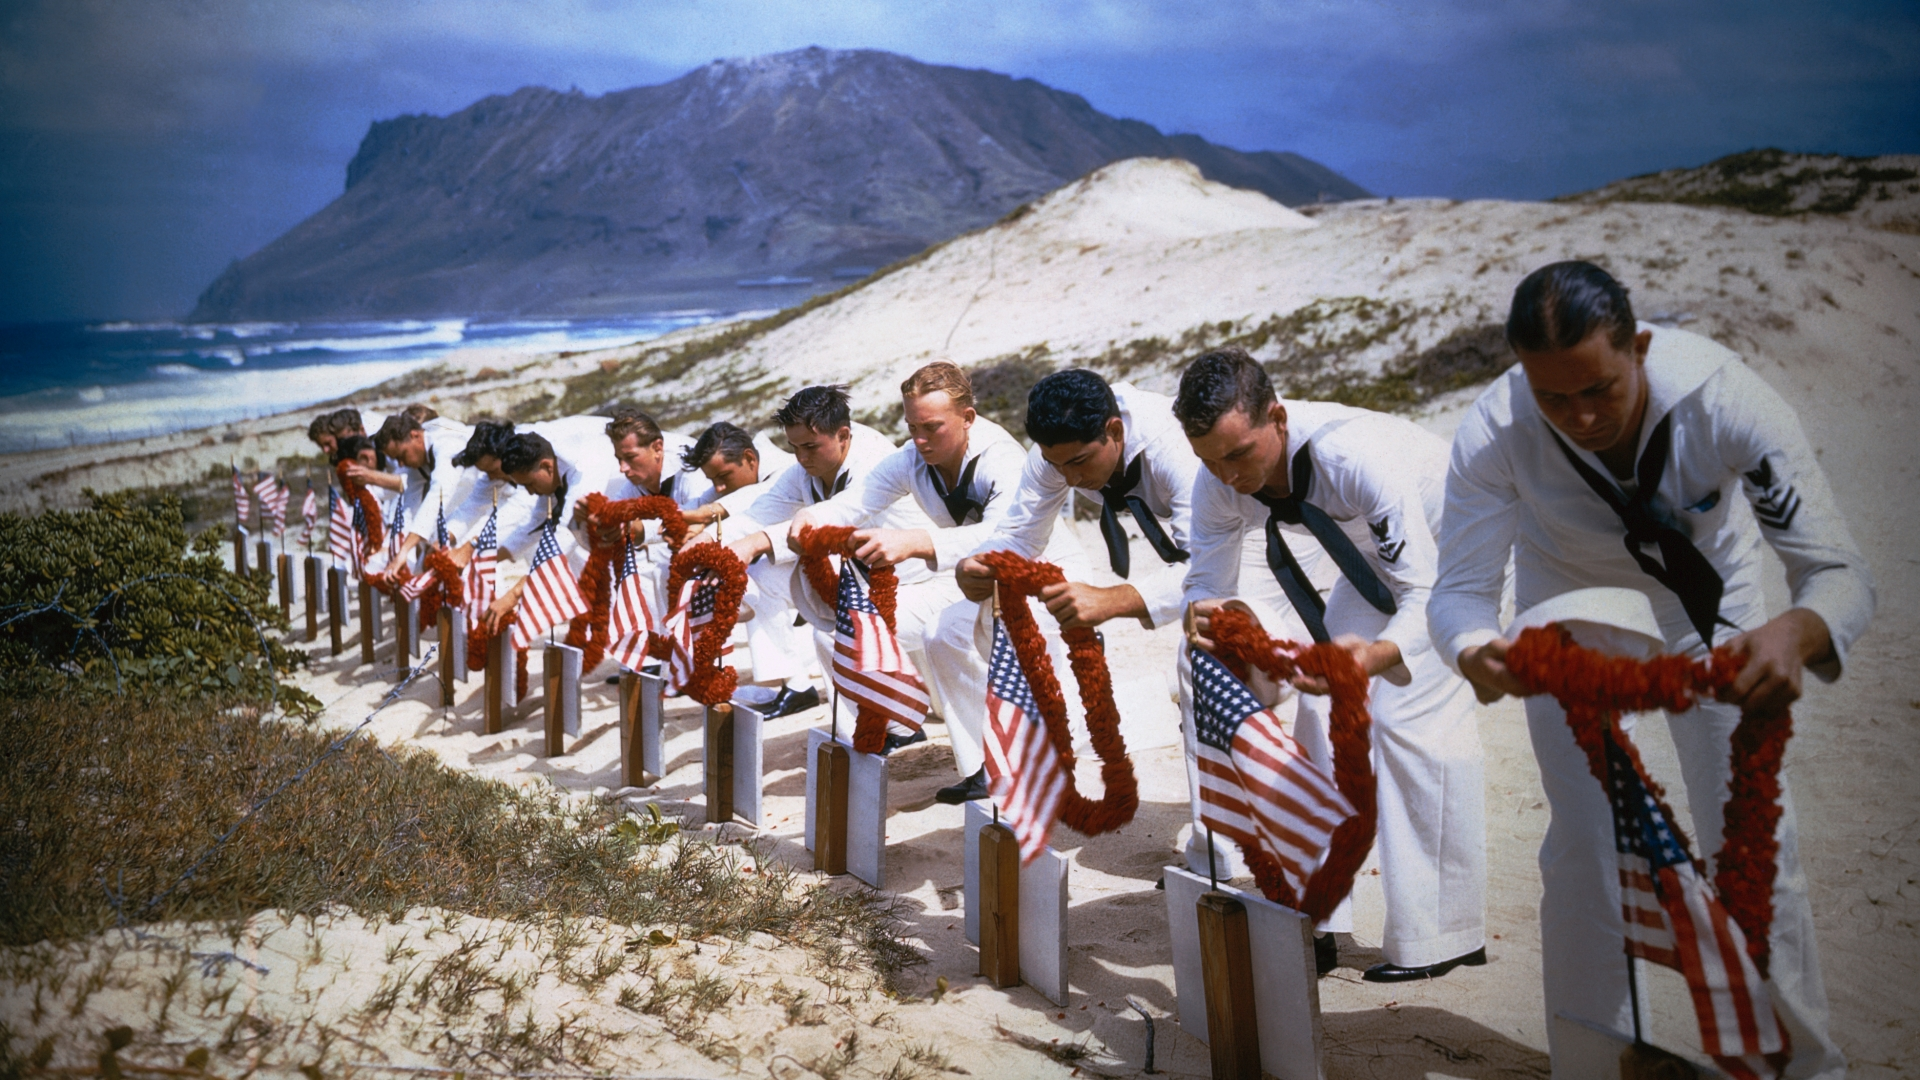 Enlisted men of the Naval Air Station at Kaneohe, Hawaii, place leis on the graves of their comrades killed in the Japanese attack on Pearl Harbor last December 7th in this 1942 photo. Graves were dug along the shore of the Pacific Ocean. (Credit: Bettmann/Getty Images)